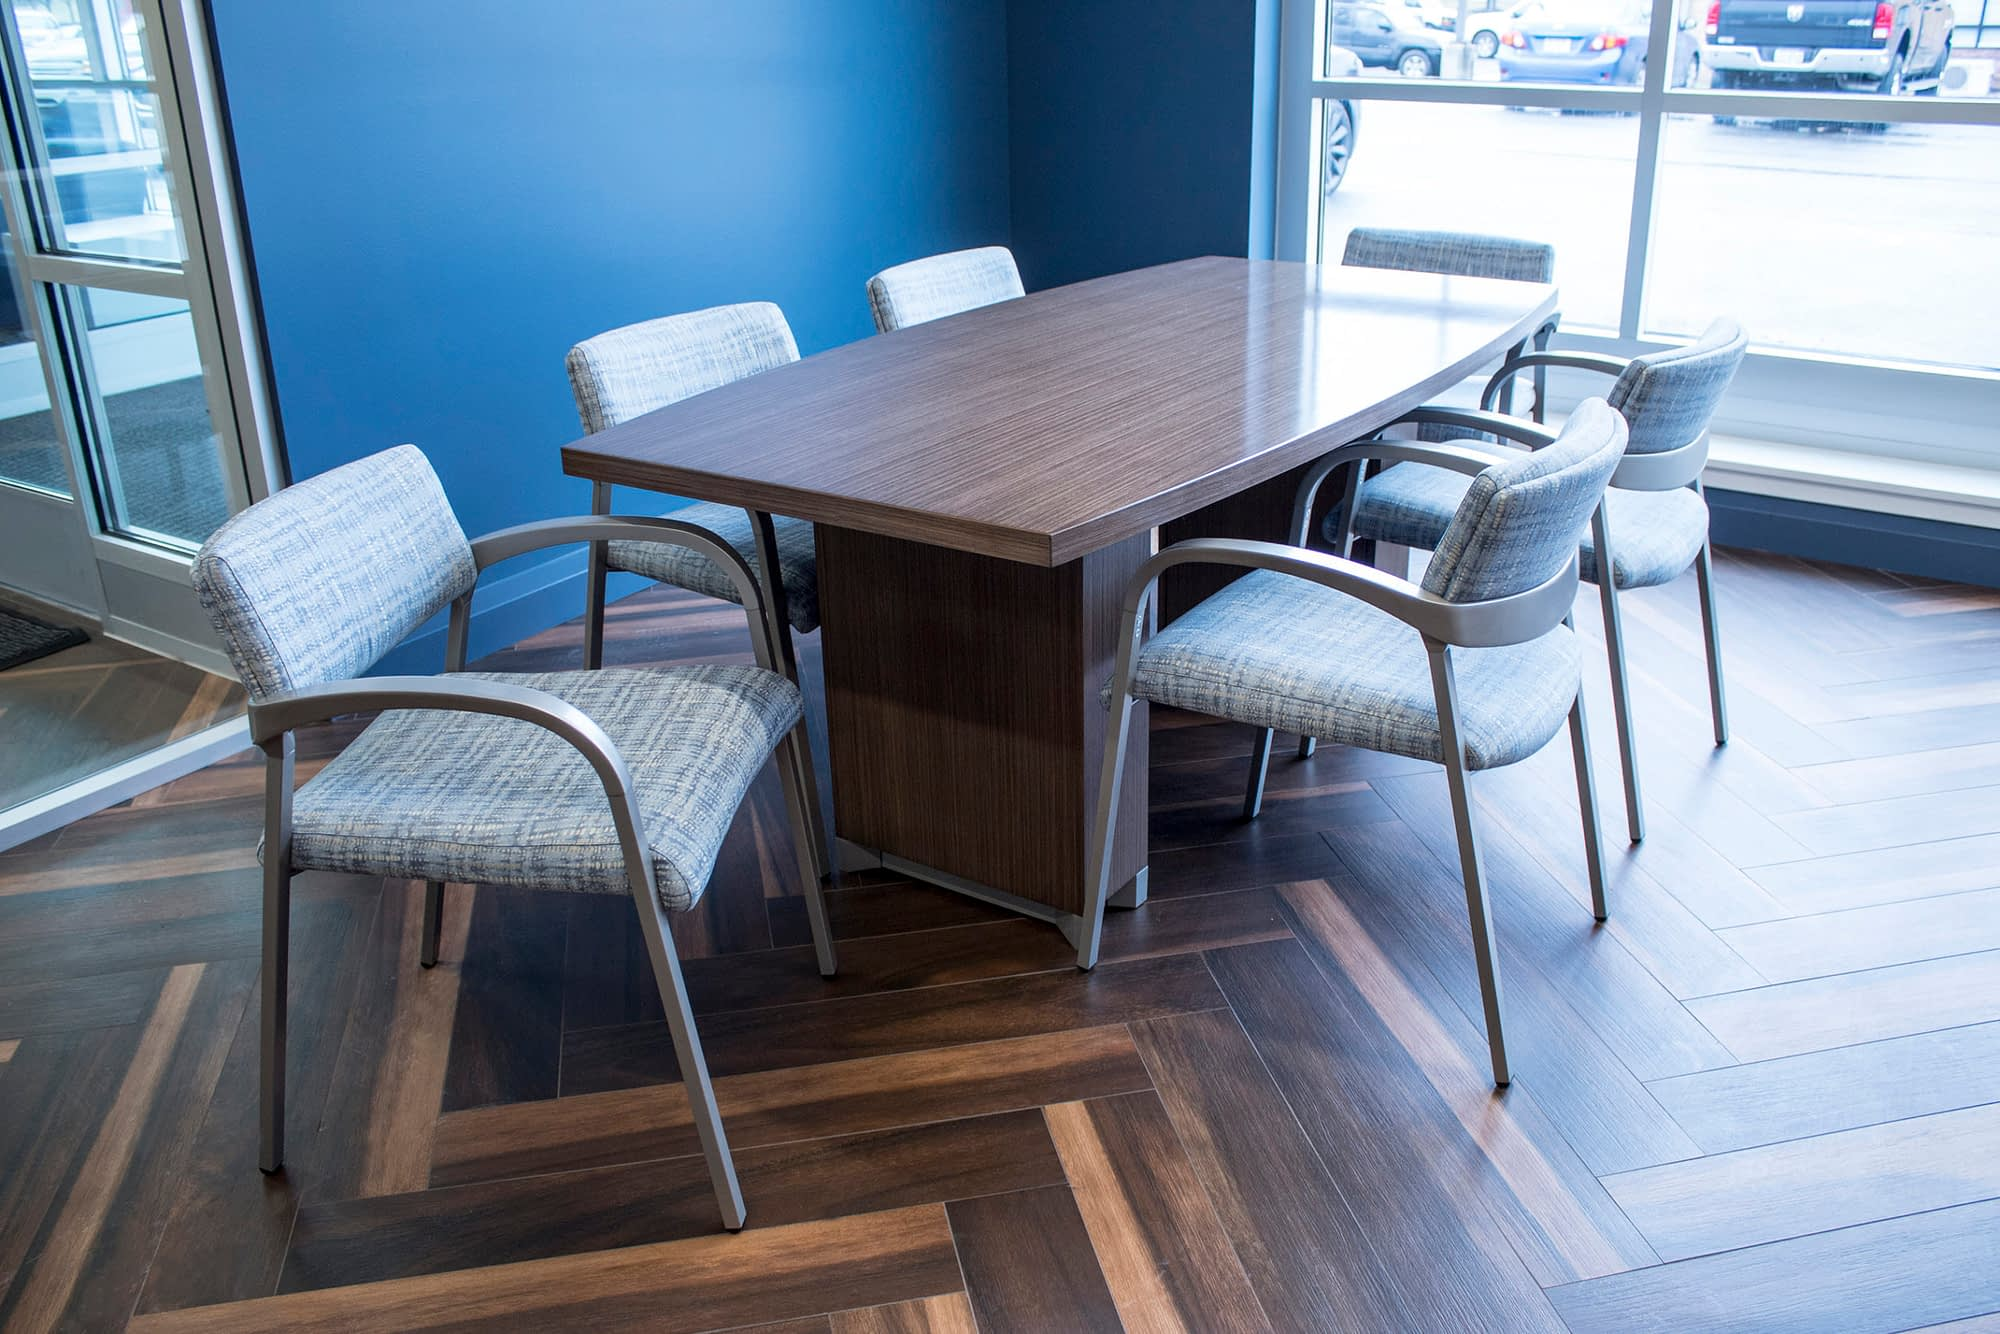 Transteck Executive Office Conference Table and Chairs